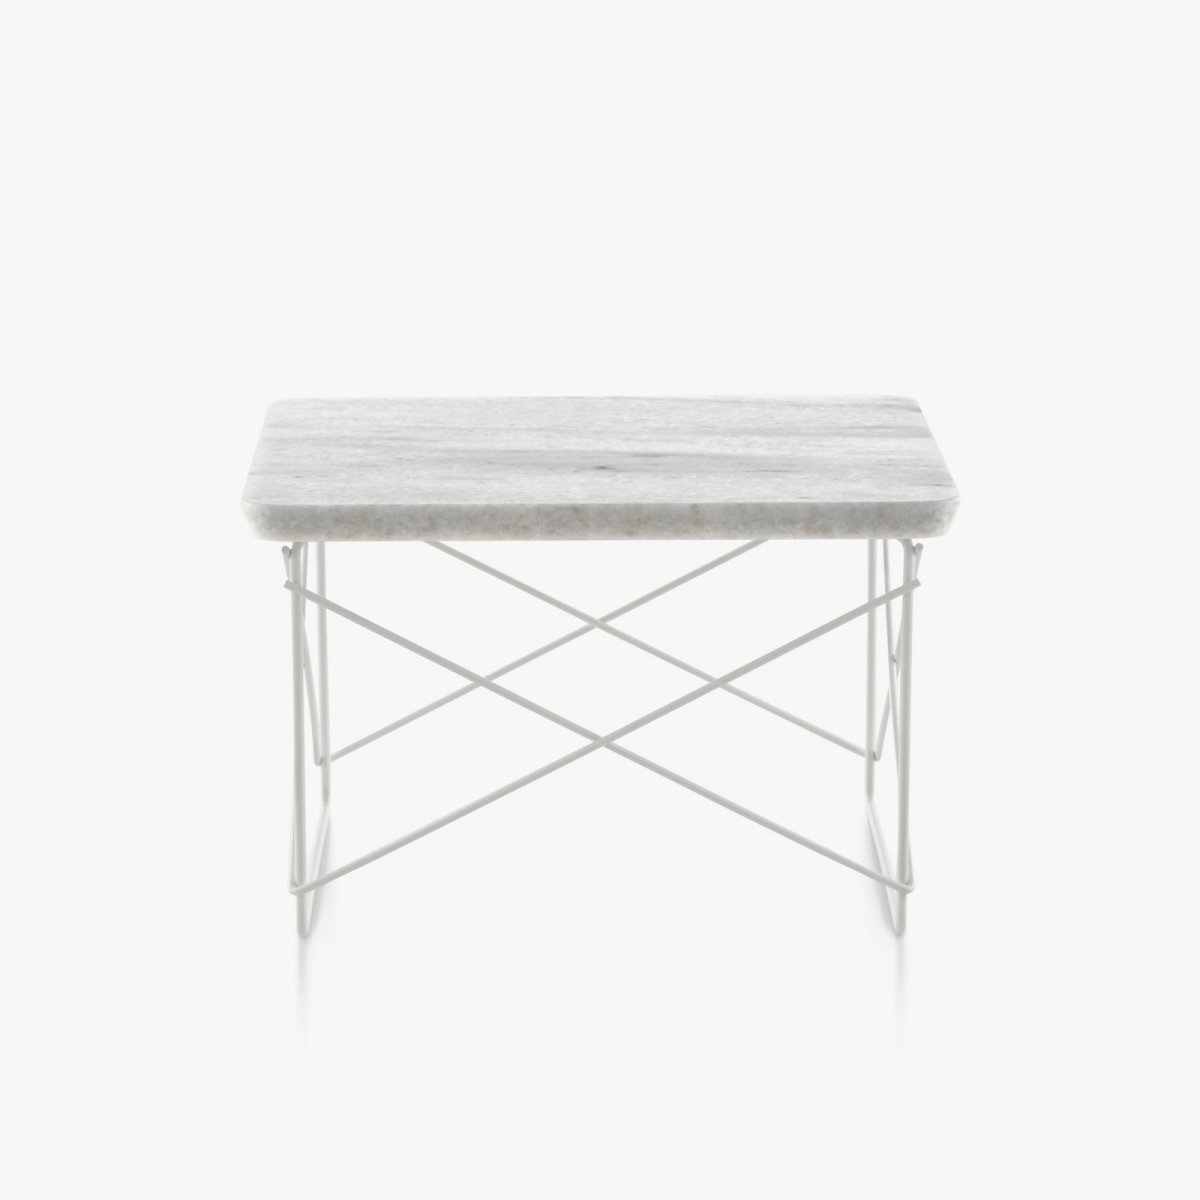 Eames Wire Base Low Table, Georgia gray marble top with white base.